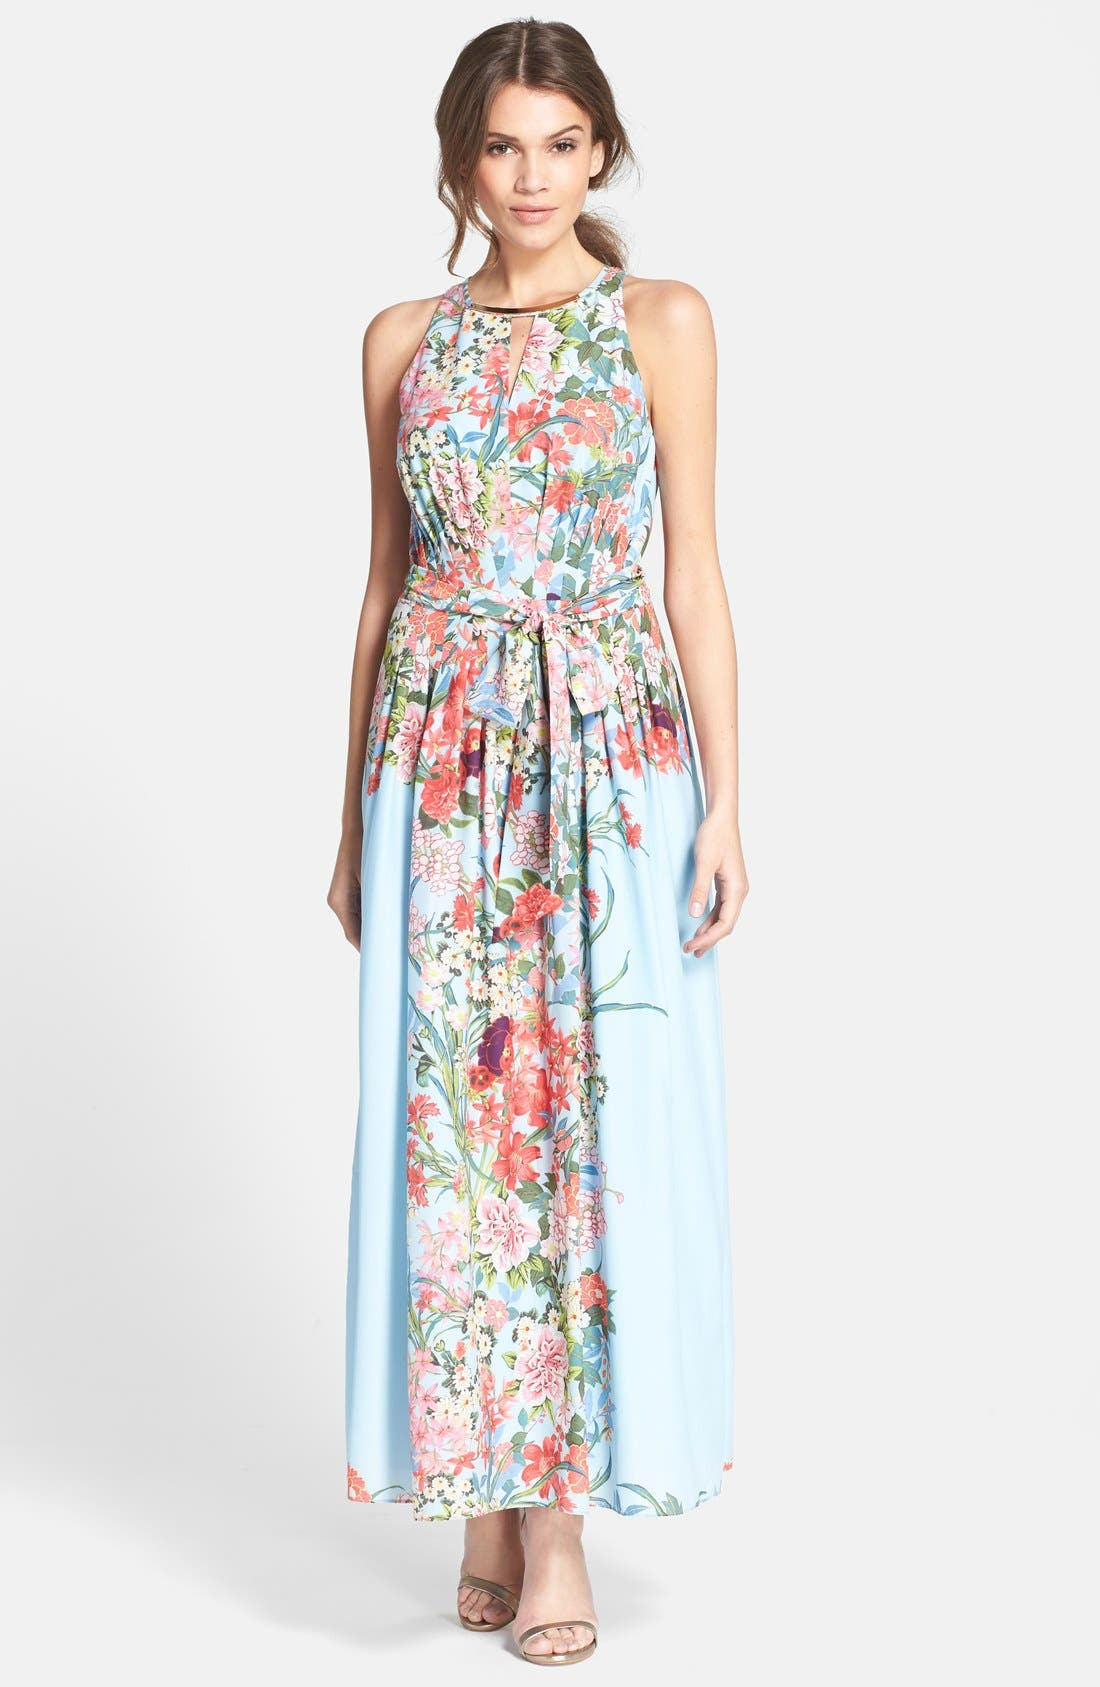 Main Image - Adrianna Papell Print Chiffon Fit & Flare Dress